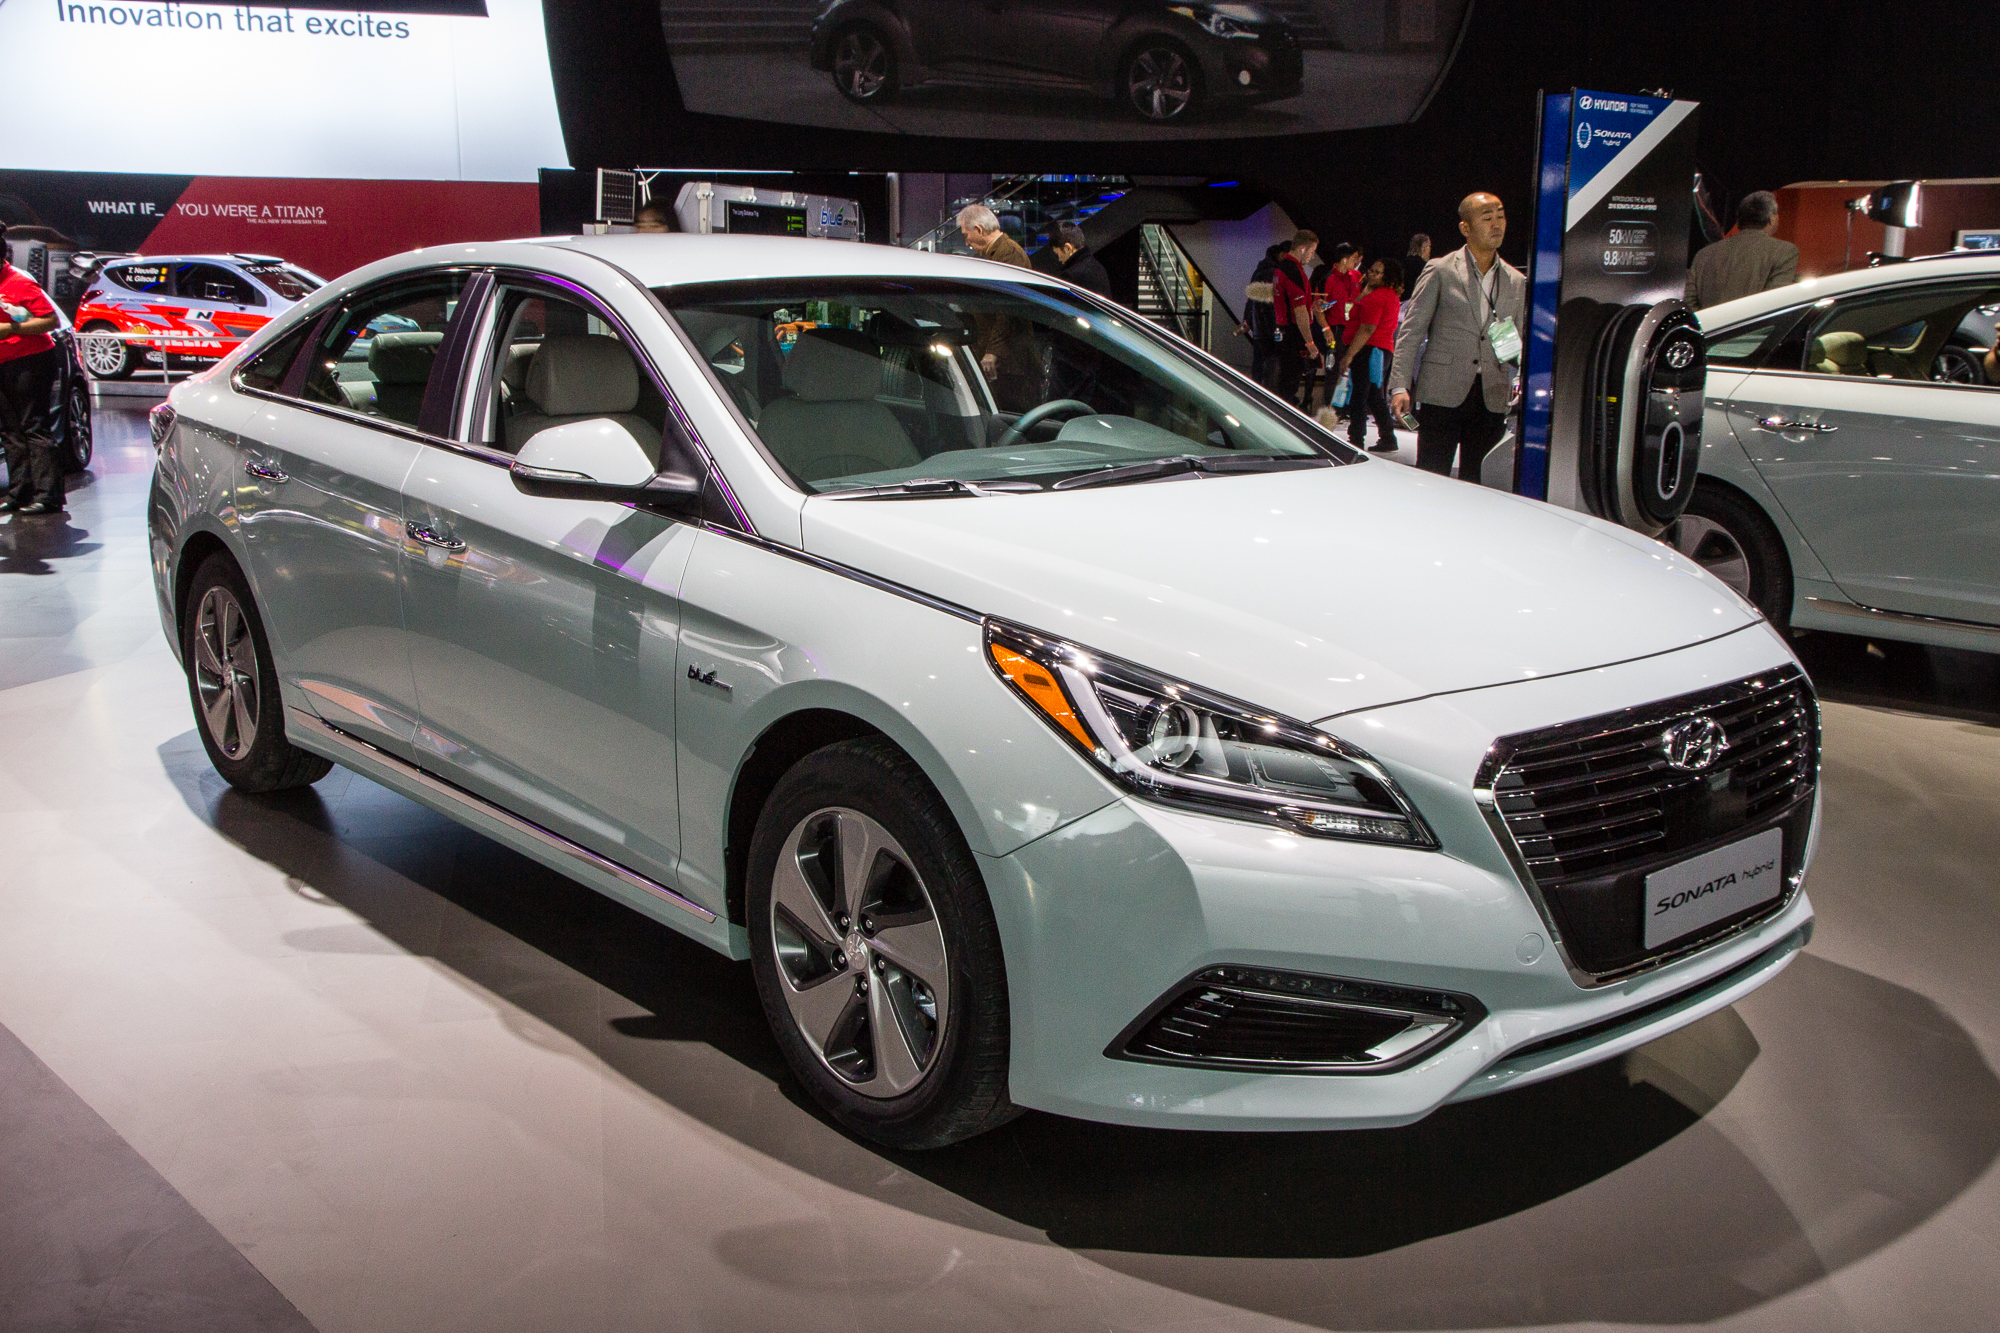 2016 Hyundai Sonata Hybrid Plug In Debut At 2017 Detroit Auto Show